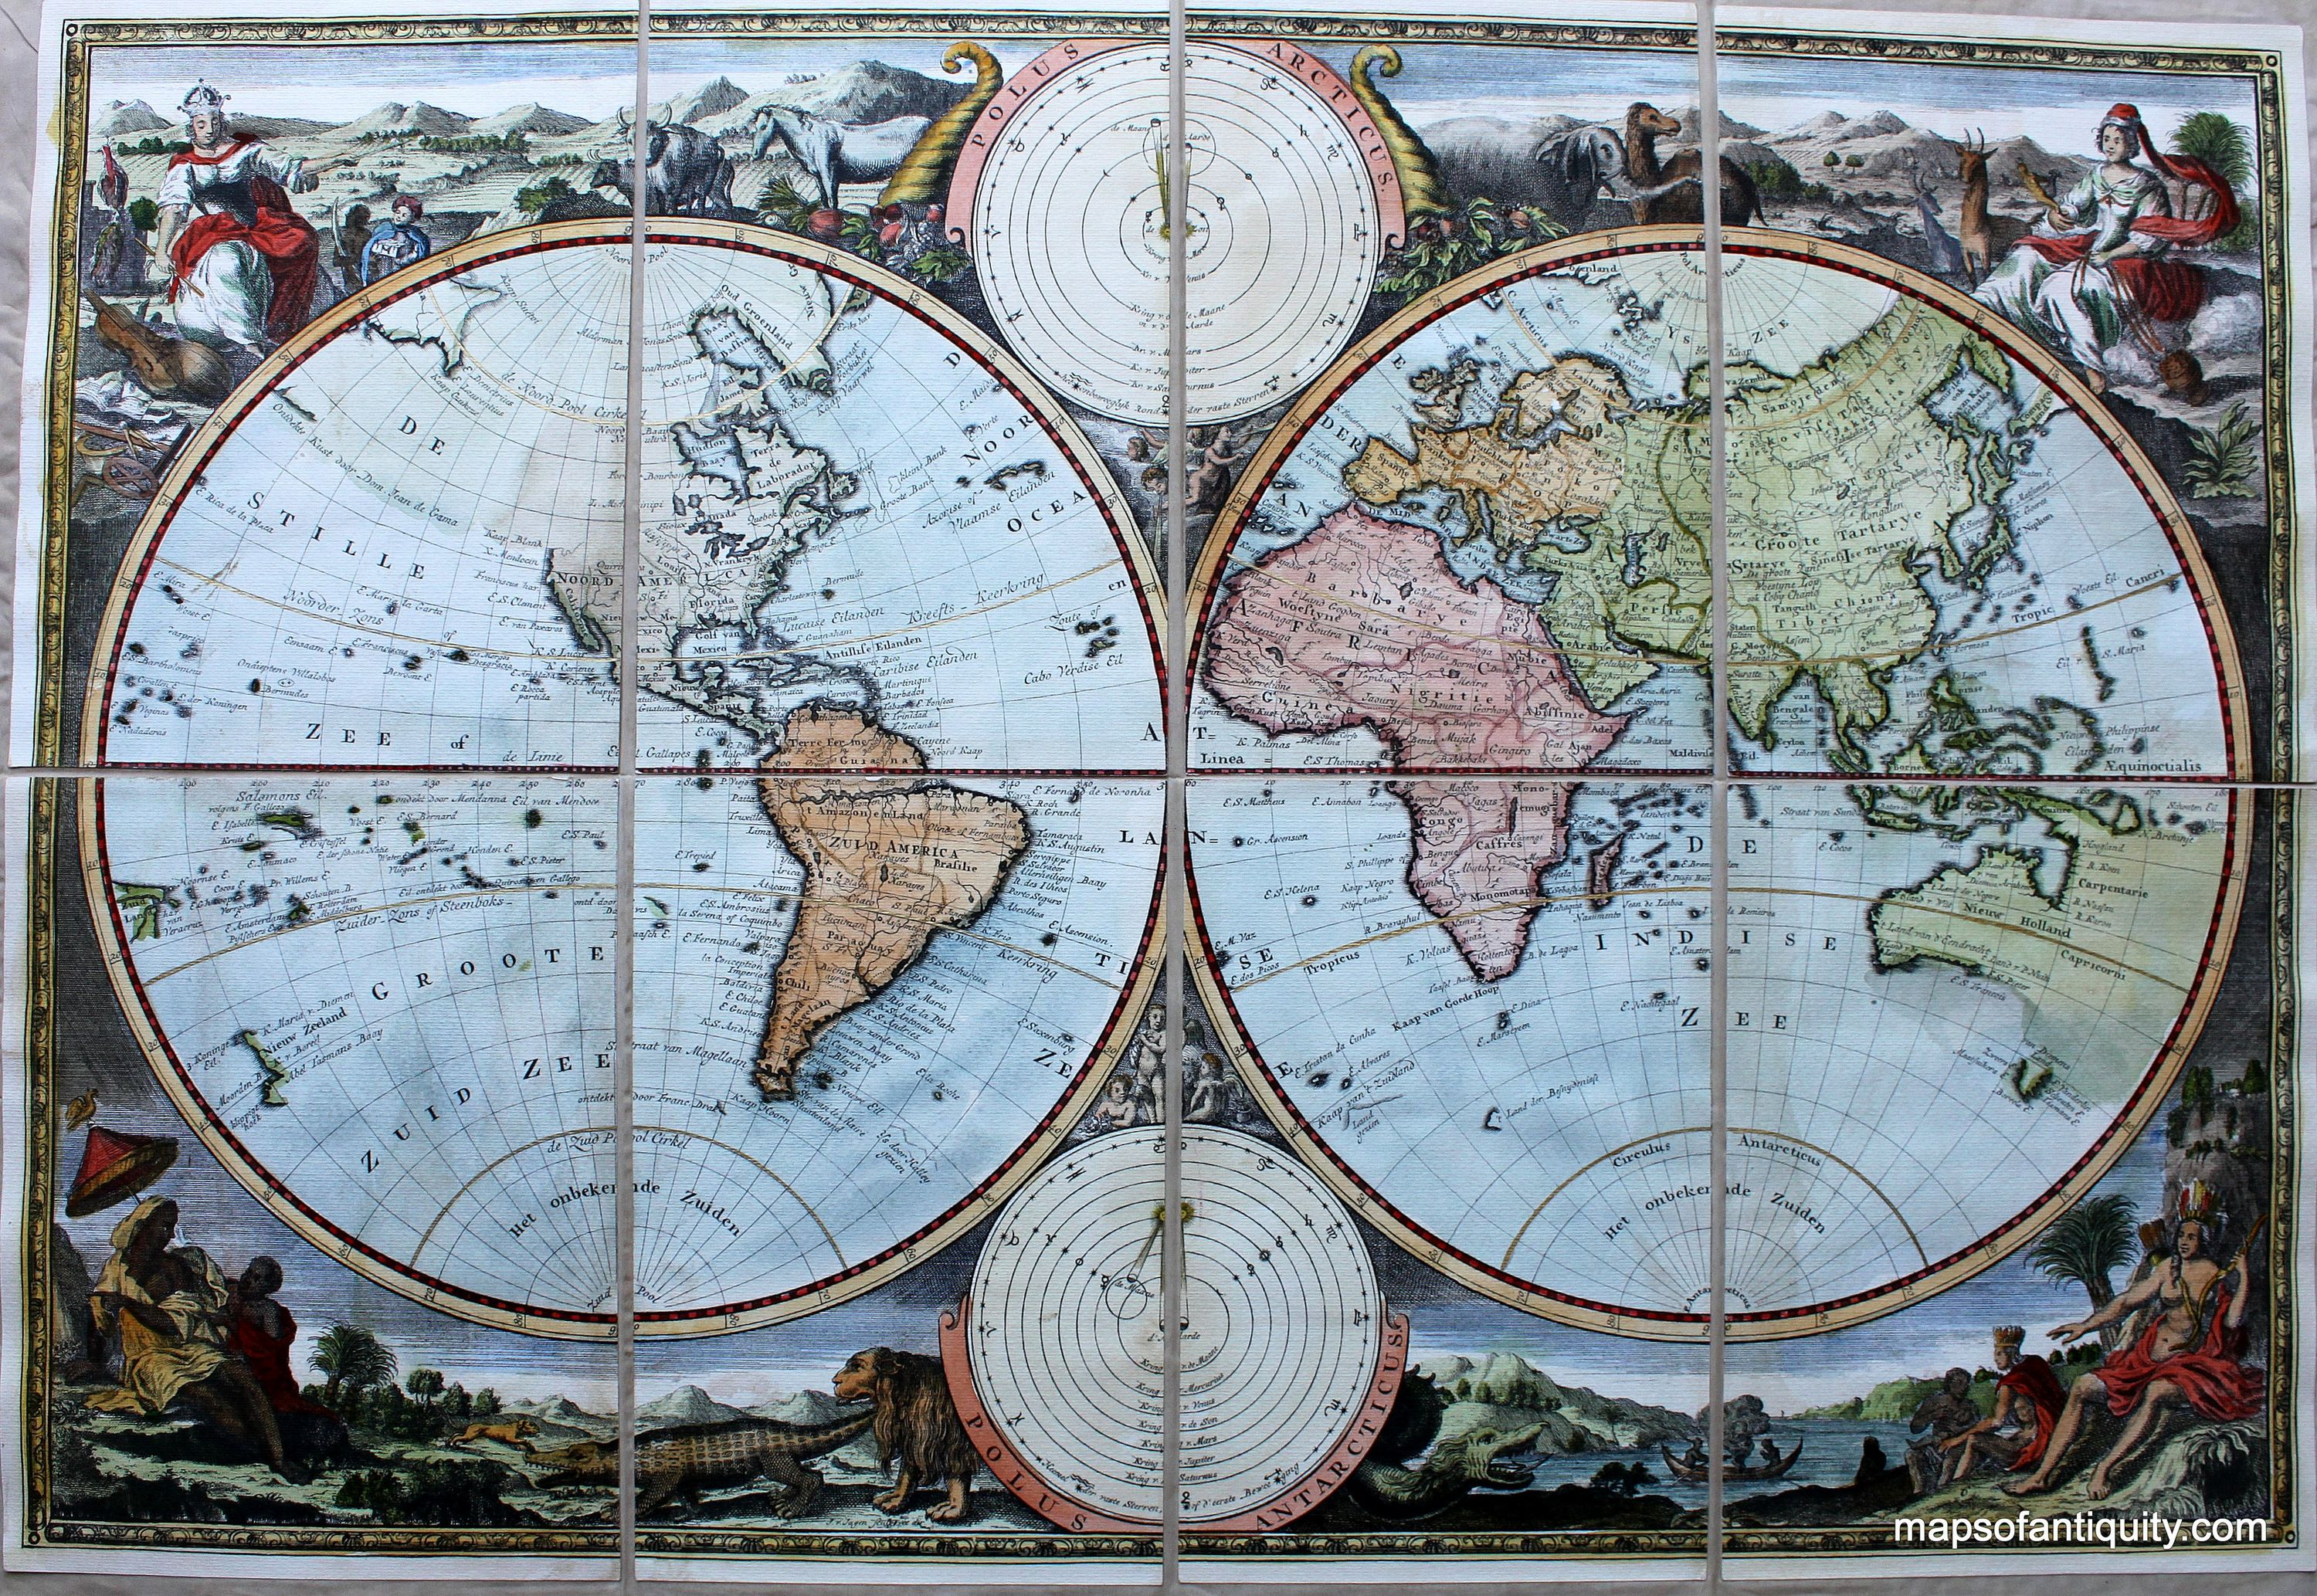 Mounted World Map.This Reproduction World Map Mounted On Cloth Has A Few Map Monsters